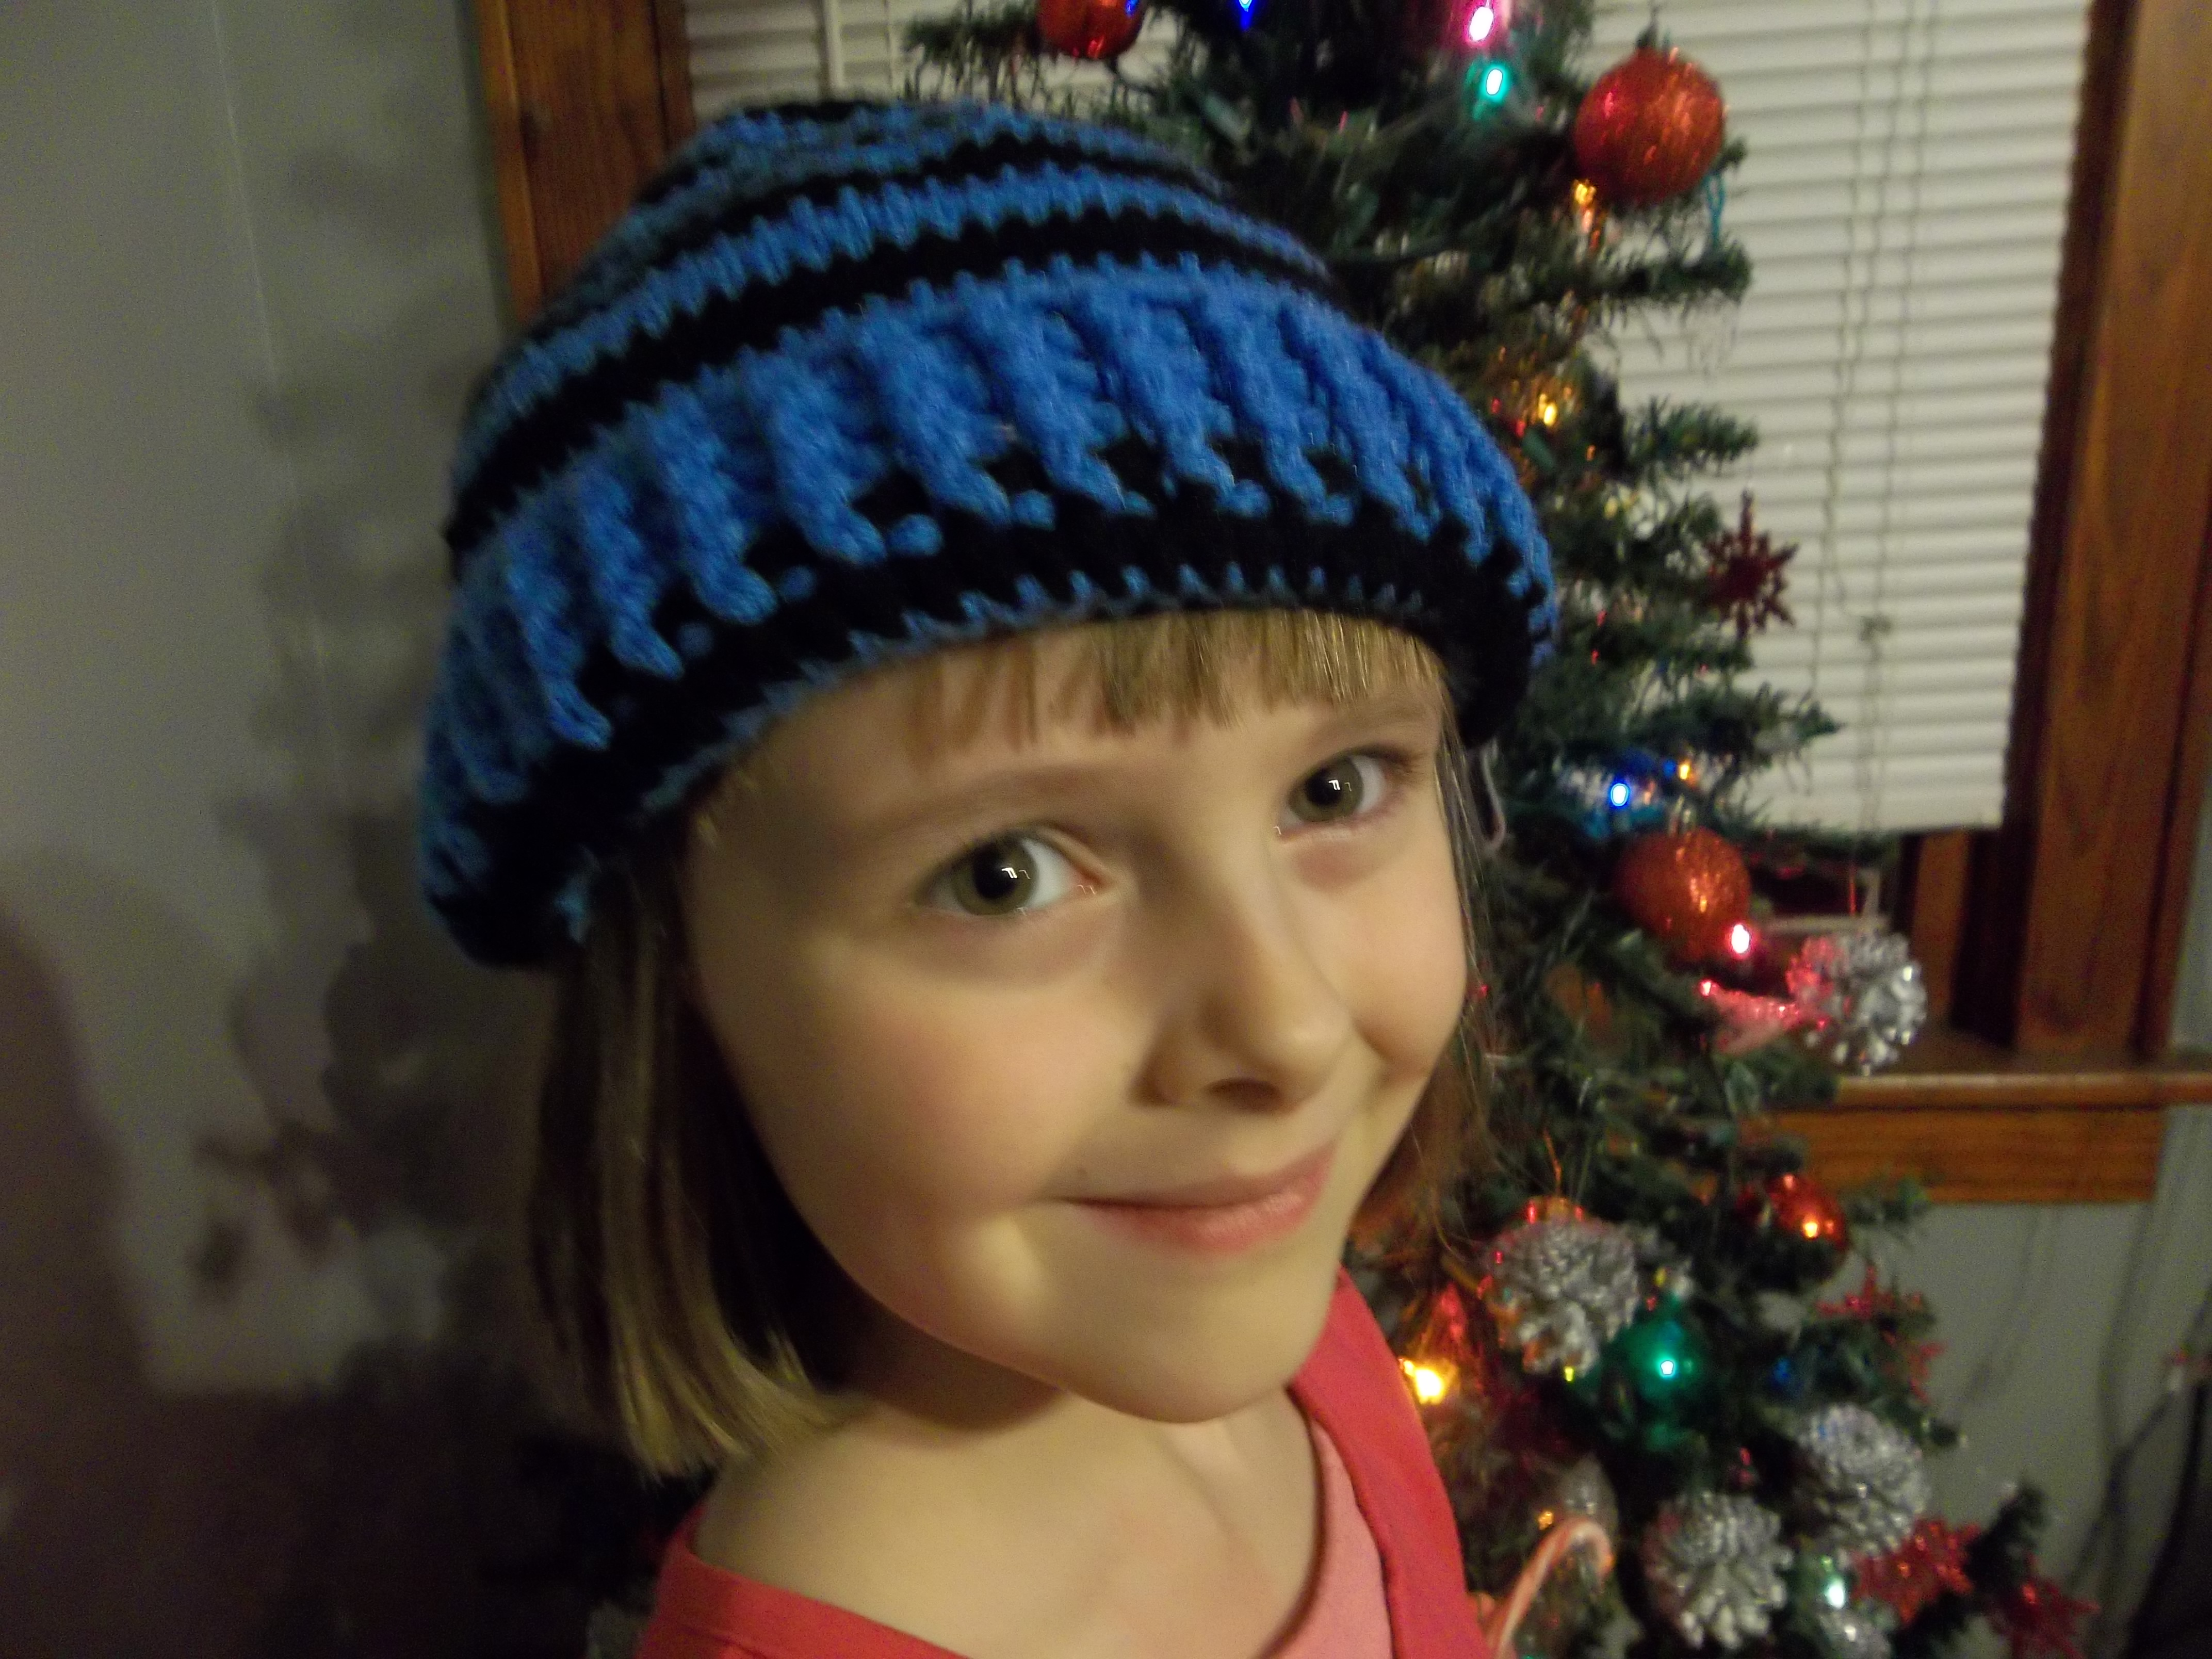 Free Crochet Hat Patterns For 1 Year Old : Toddler Crochet Hat Pattern - Modern Homemakers